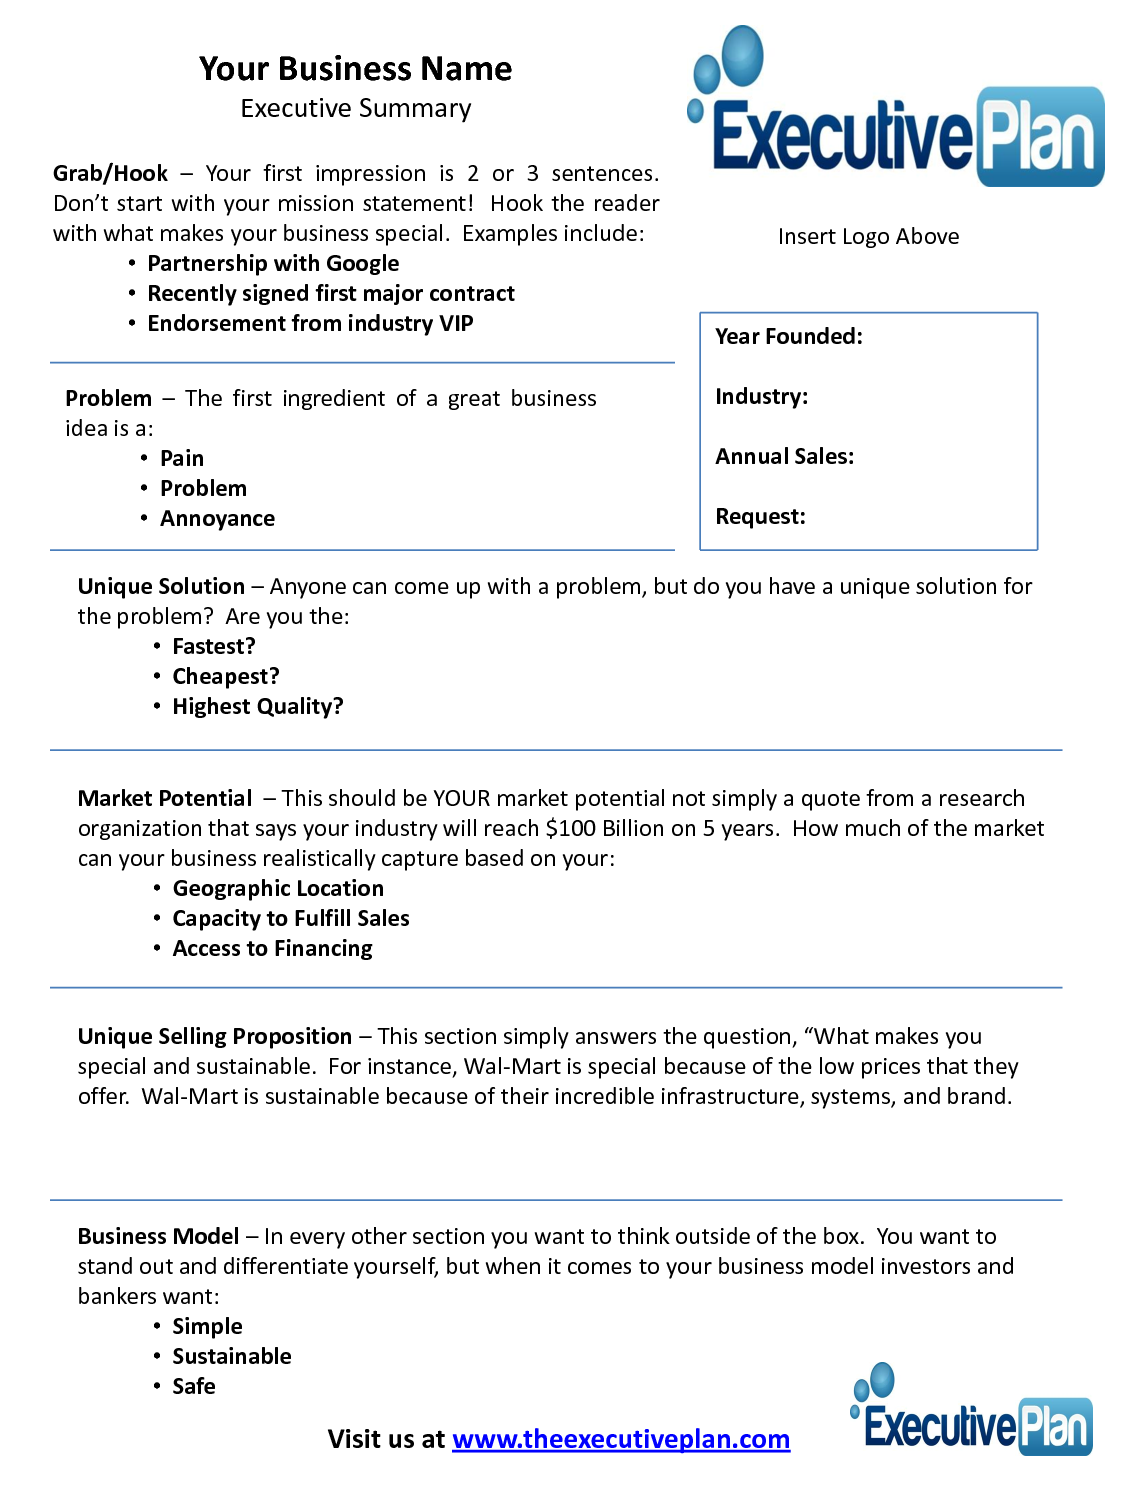 Simple Executive Summary 20 Executive Summary Templates Free Premium  Templates, Sample Executive Summary Template 7 Free Documents In Pdf Word,  ...  Executive Summary Outline Examples Format